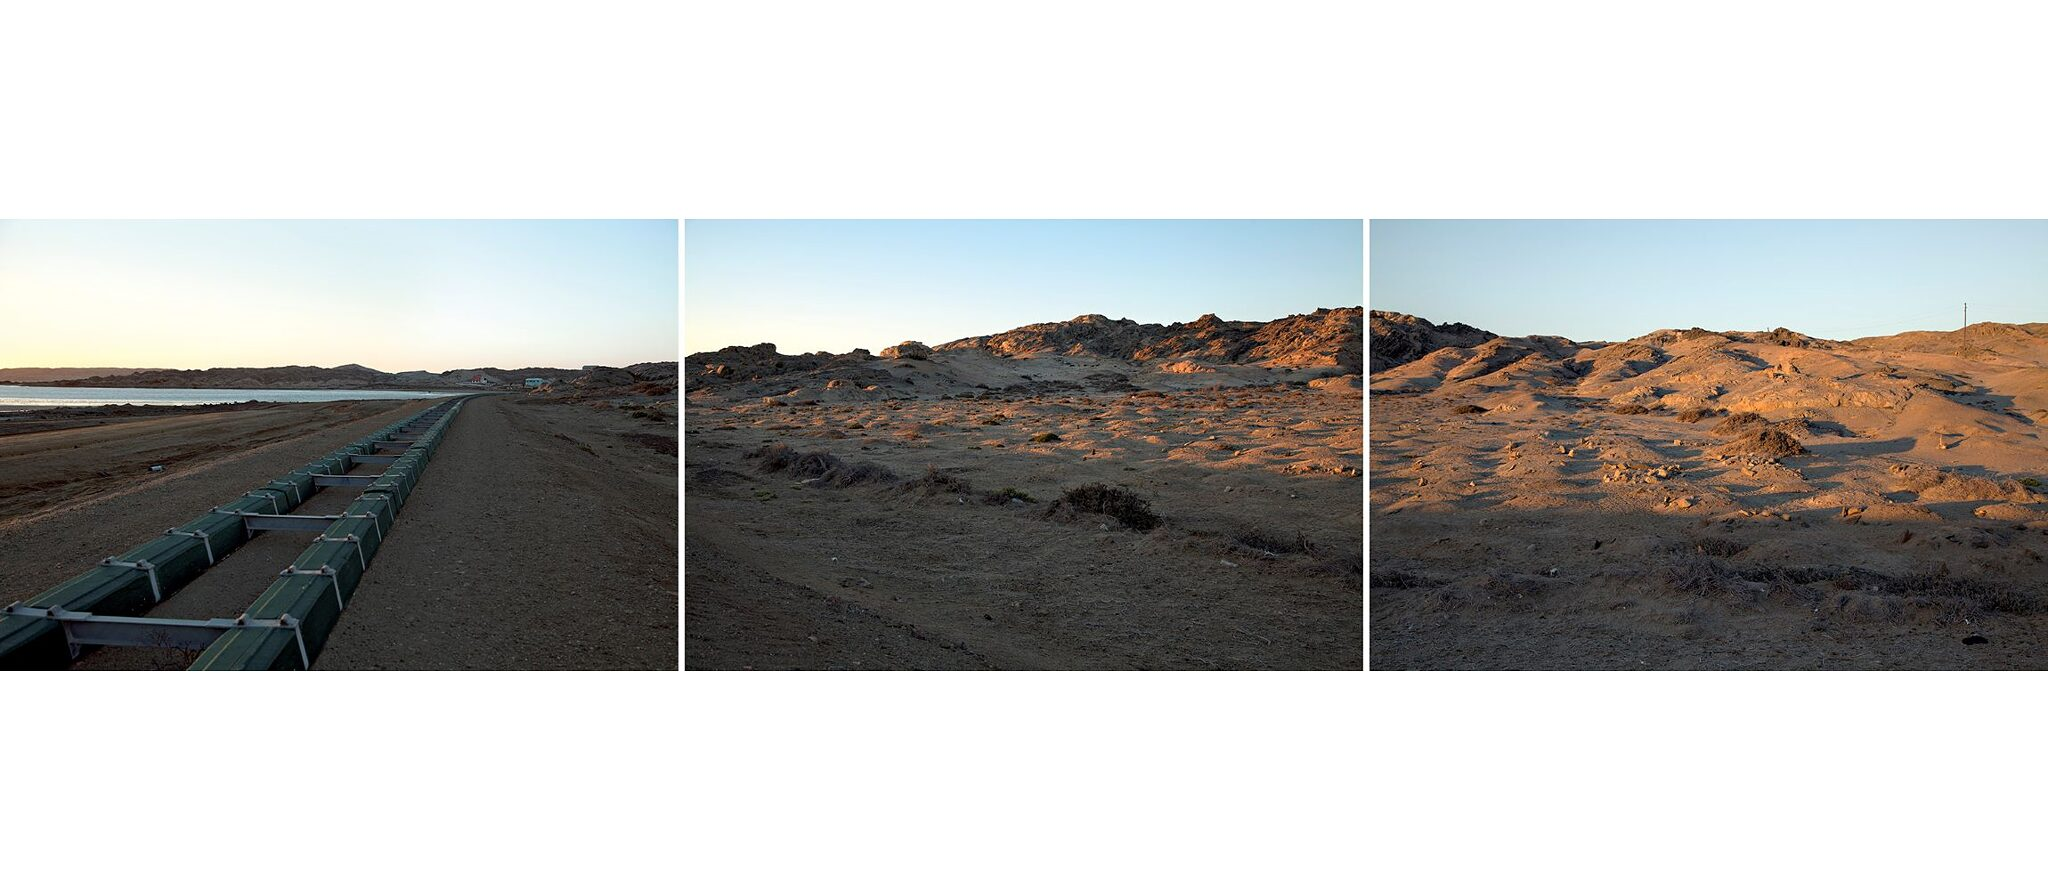 """The Earth Inside"", !Nami#Nus/Lüderitz 2013, Triptychon: These mounds mark prisoner-of-war graves outside !Nami#Nus / Lüderitz. Nama and Herero prisoners who died on Shark Island, or from exhaustion working on the railroad, were buried here. The graves lie directly next to the newly developed rail track and dirt road. They remain anonymous and unmarked."